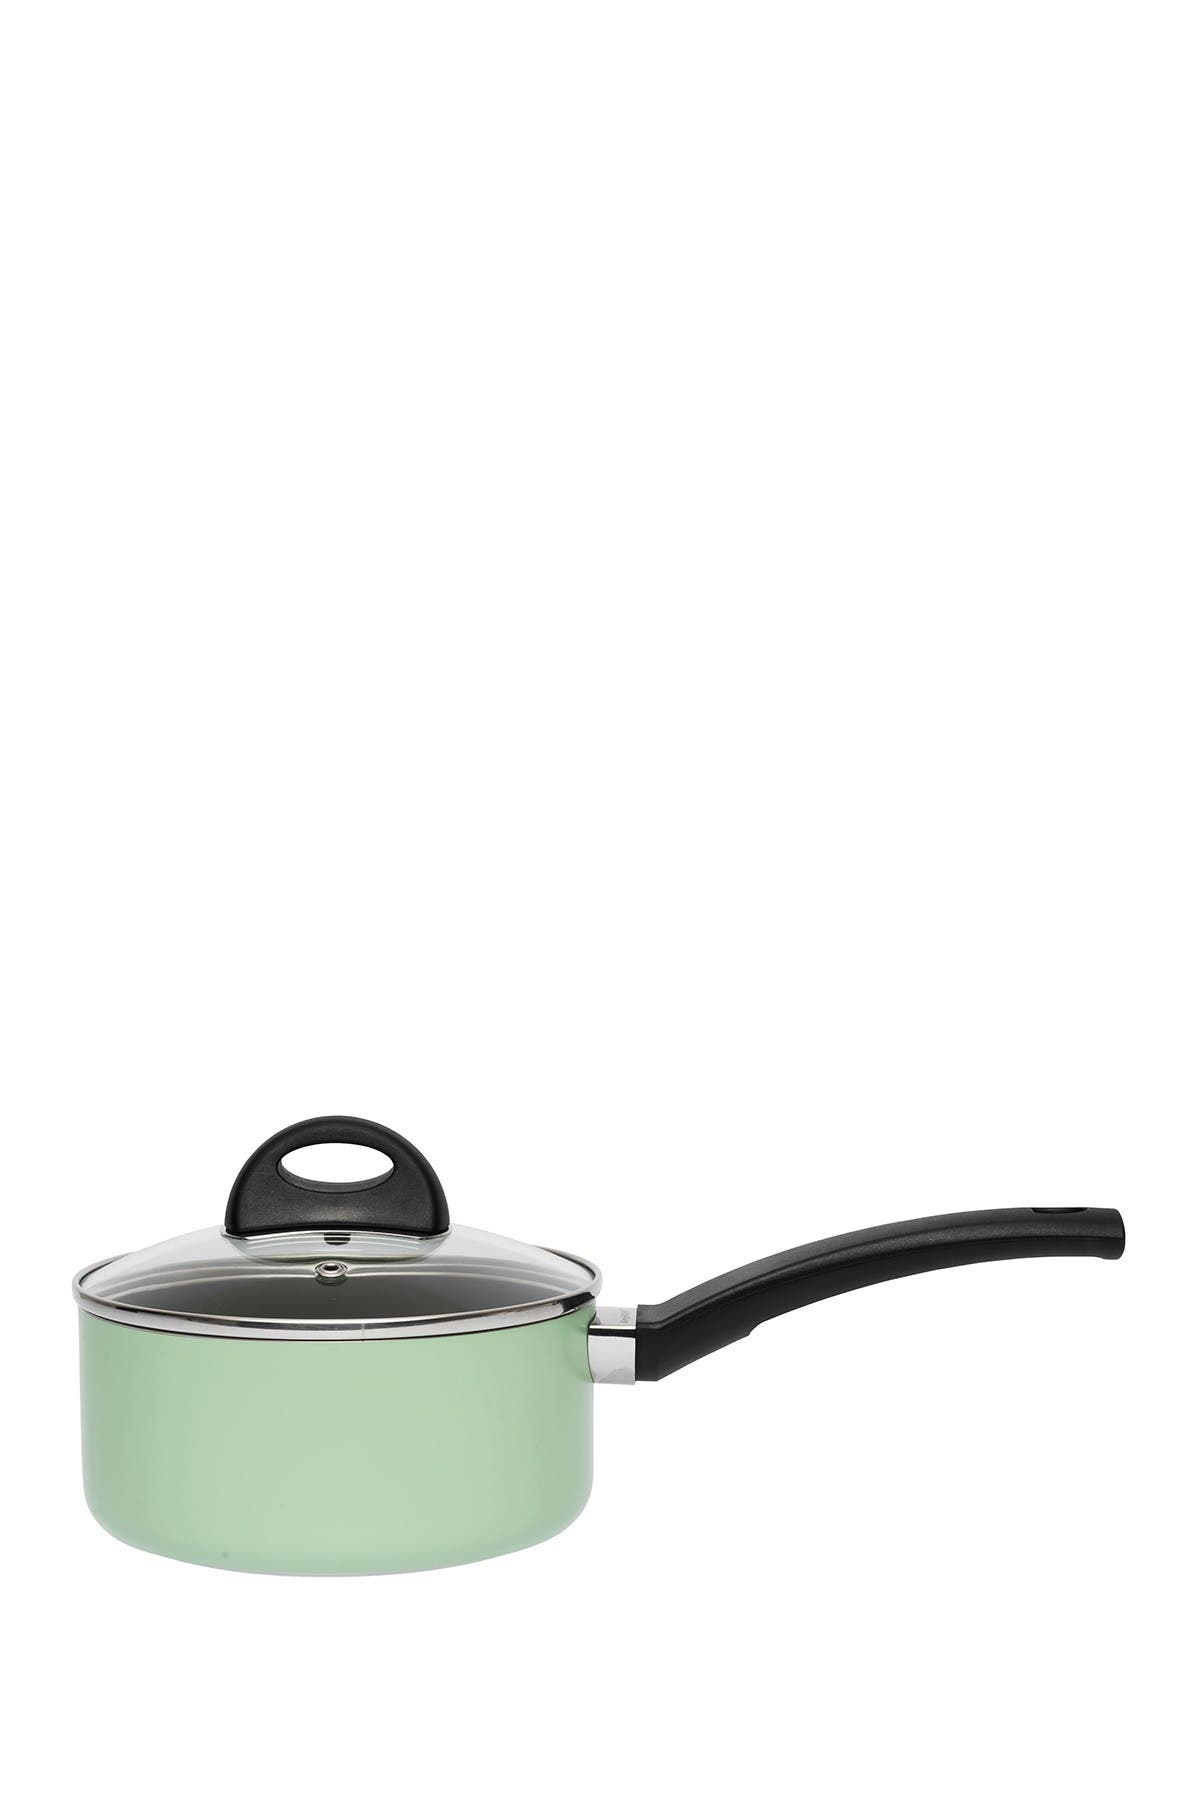 Image of BergHOFF Green 1.6 Quart Covered Sauce Pan